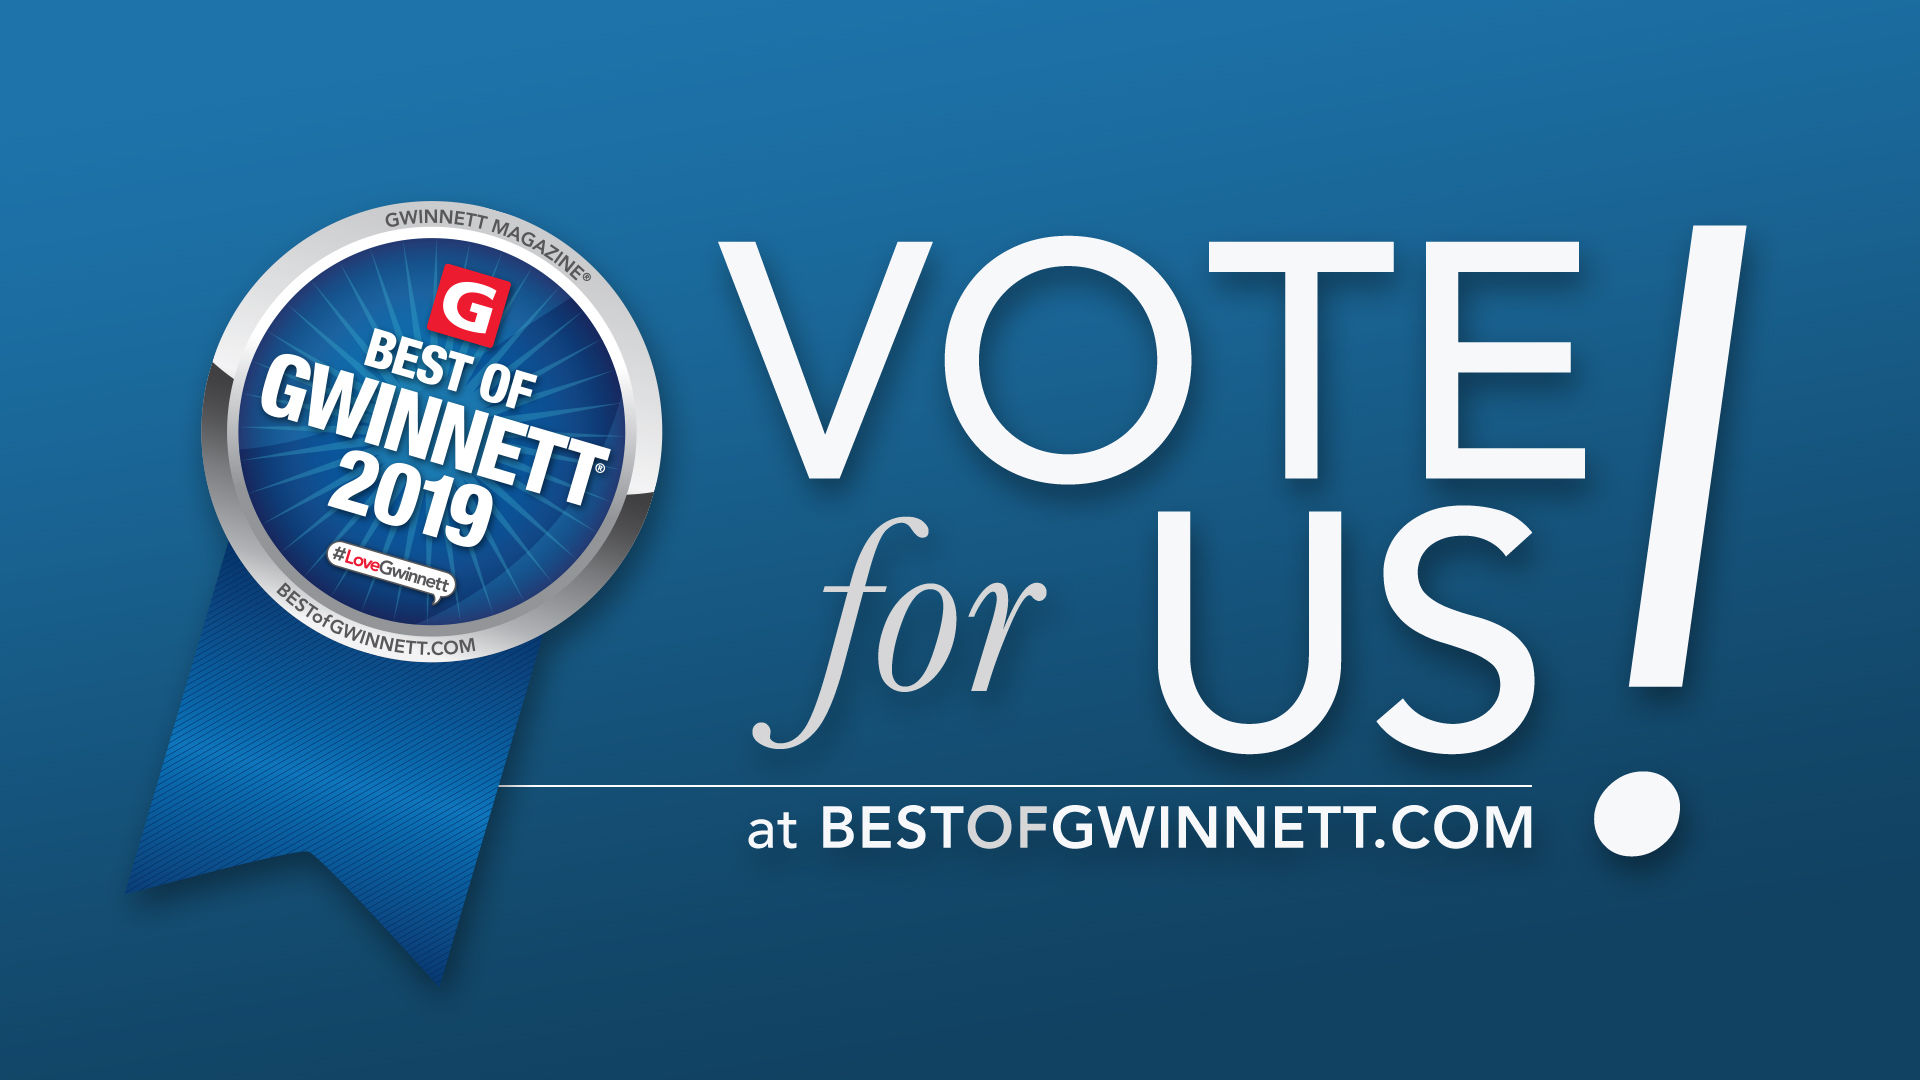 2019 Best of Gwinnett Campaign Kit Facebook